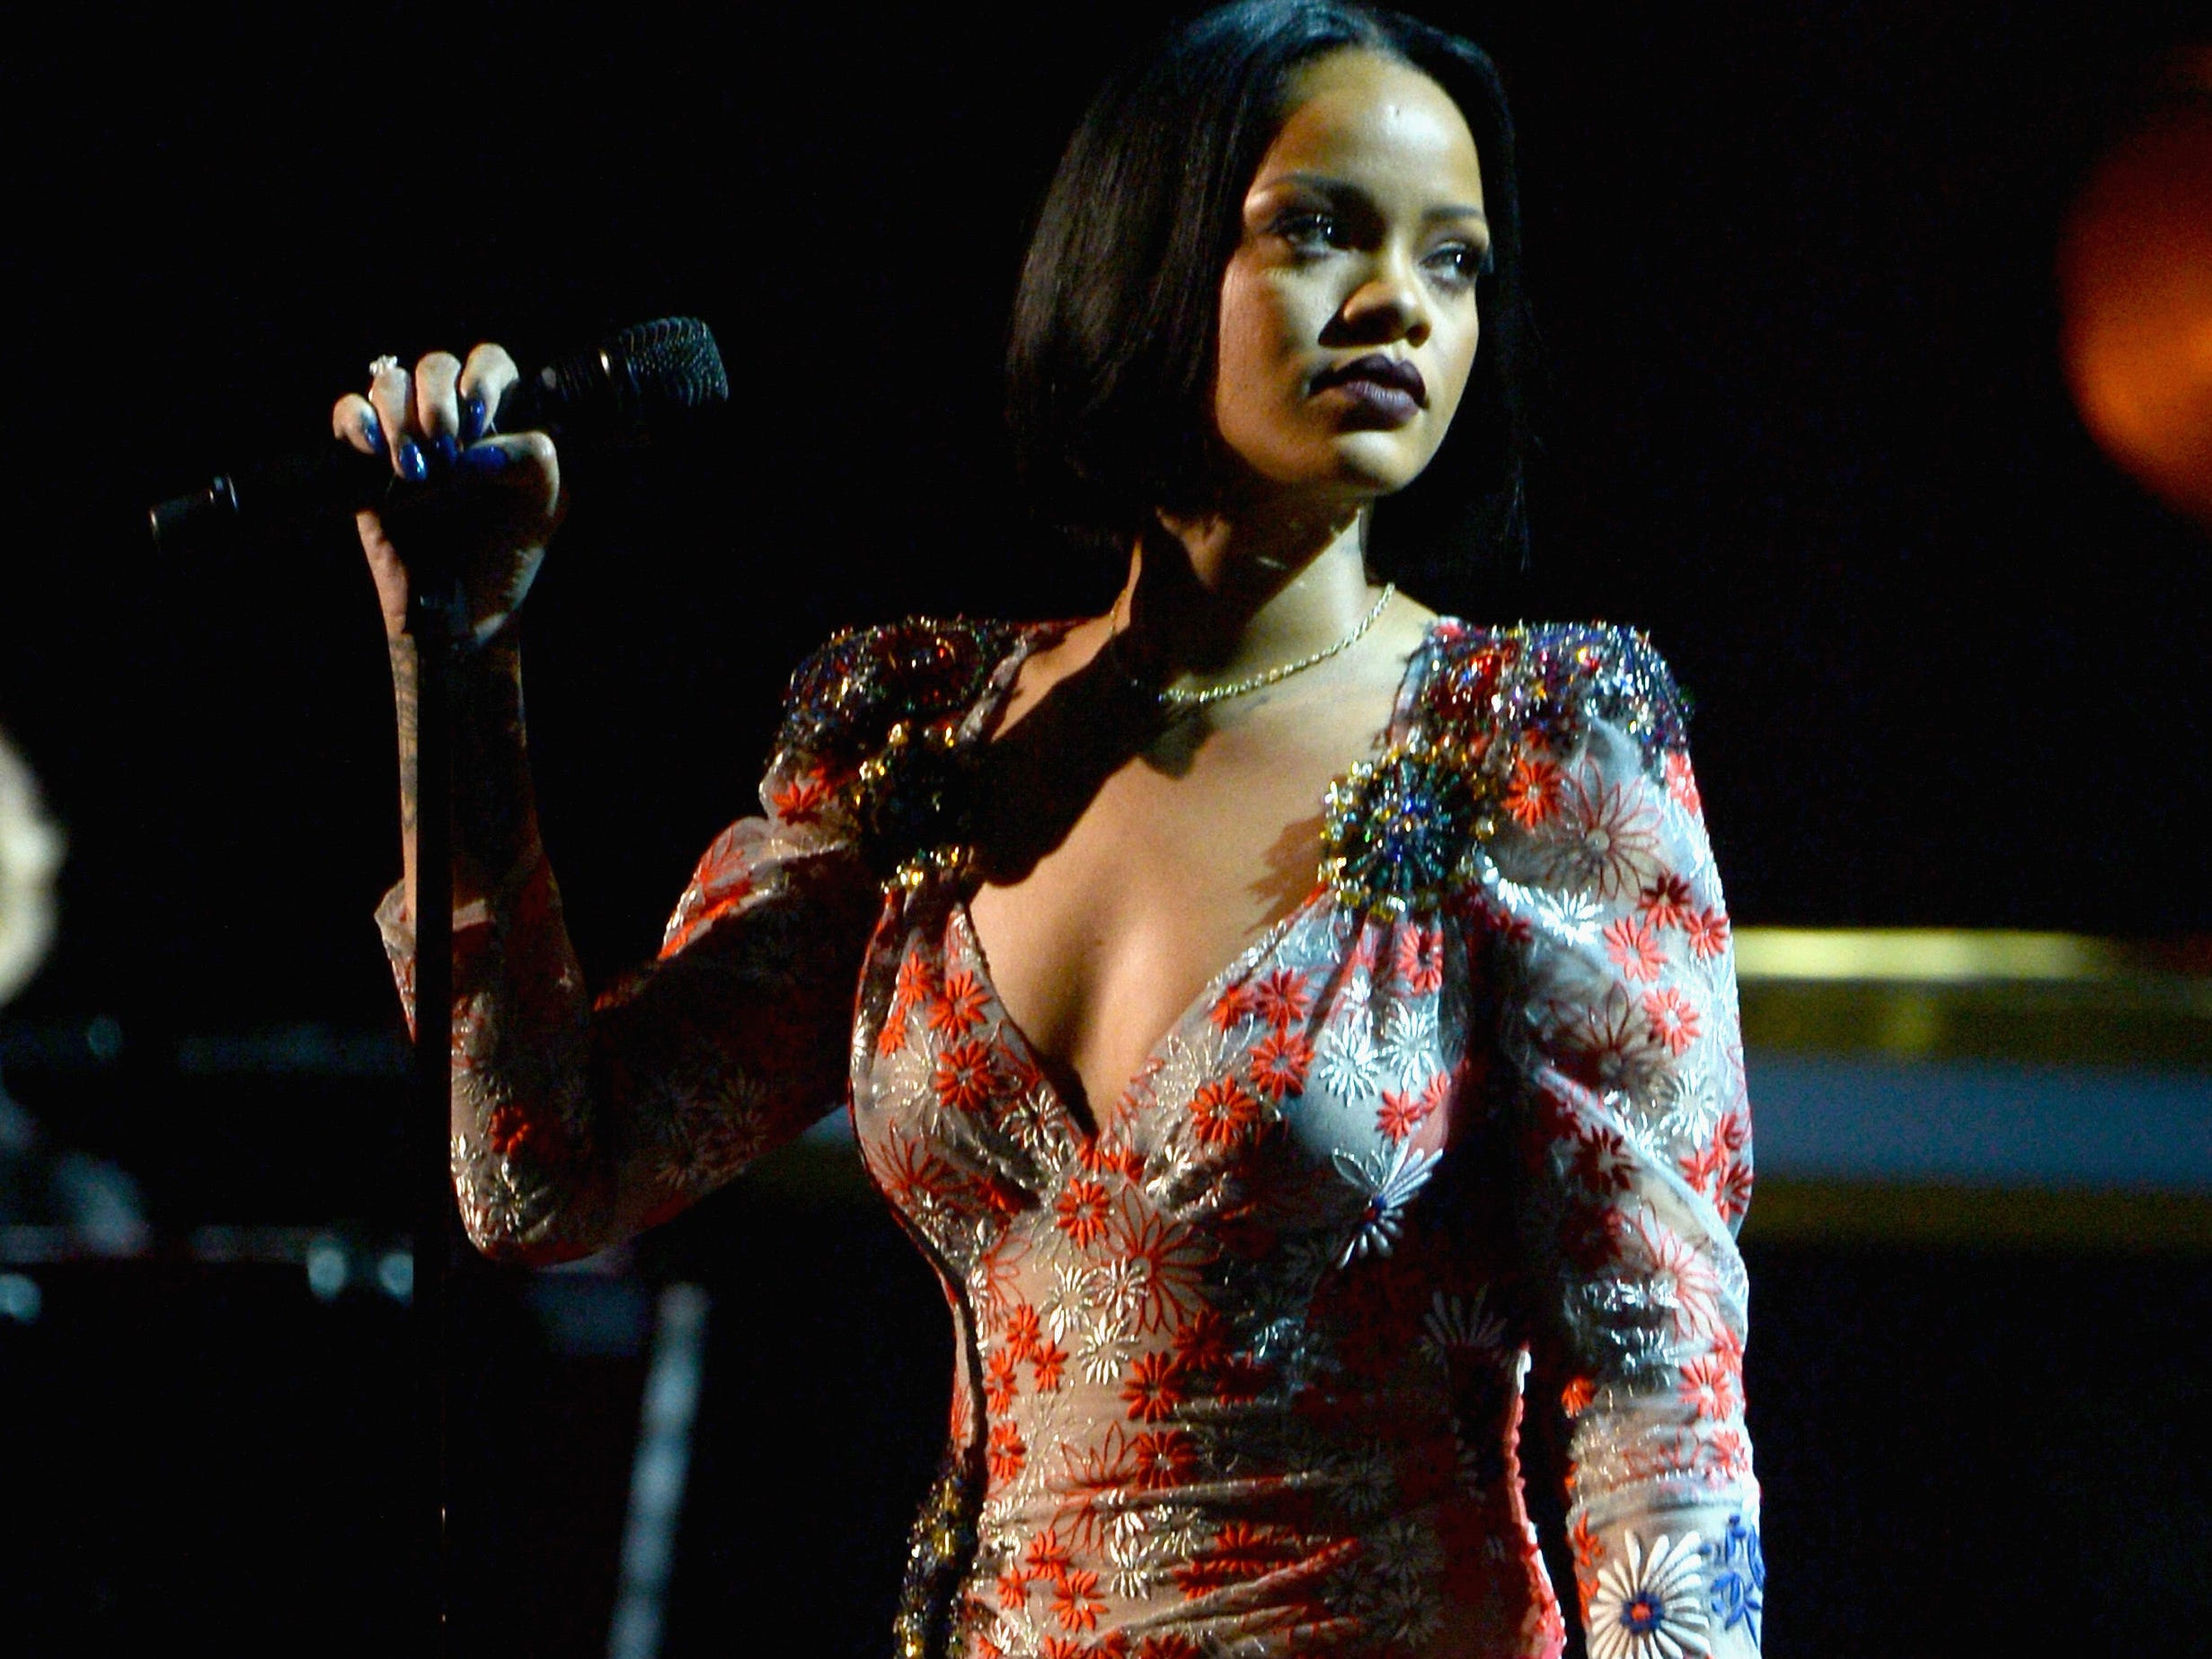 """Rihanna played one lone show in Milwaukee in her career, back on Aug. 13, 2006 at the Rave, before her true breakout smash """"Umbrella"""" propelled her to superstar status."""